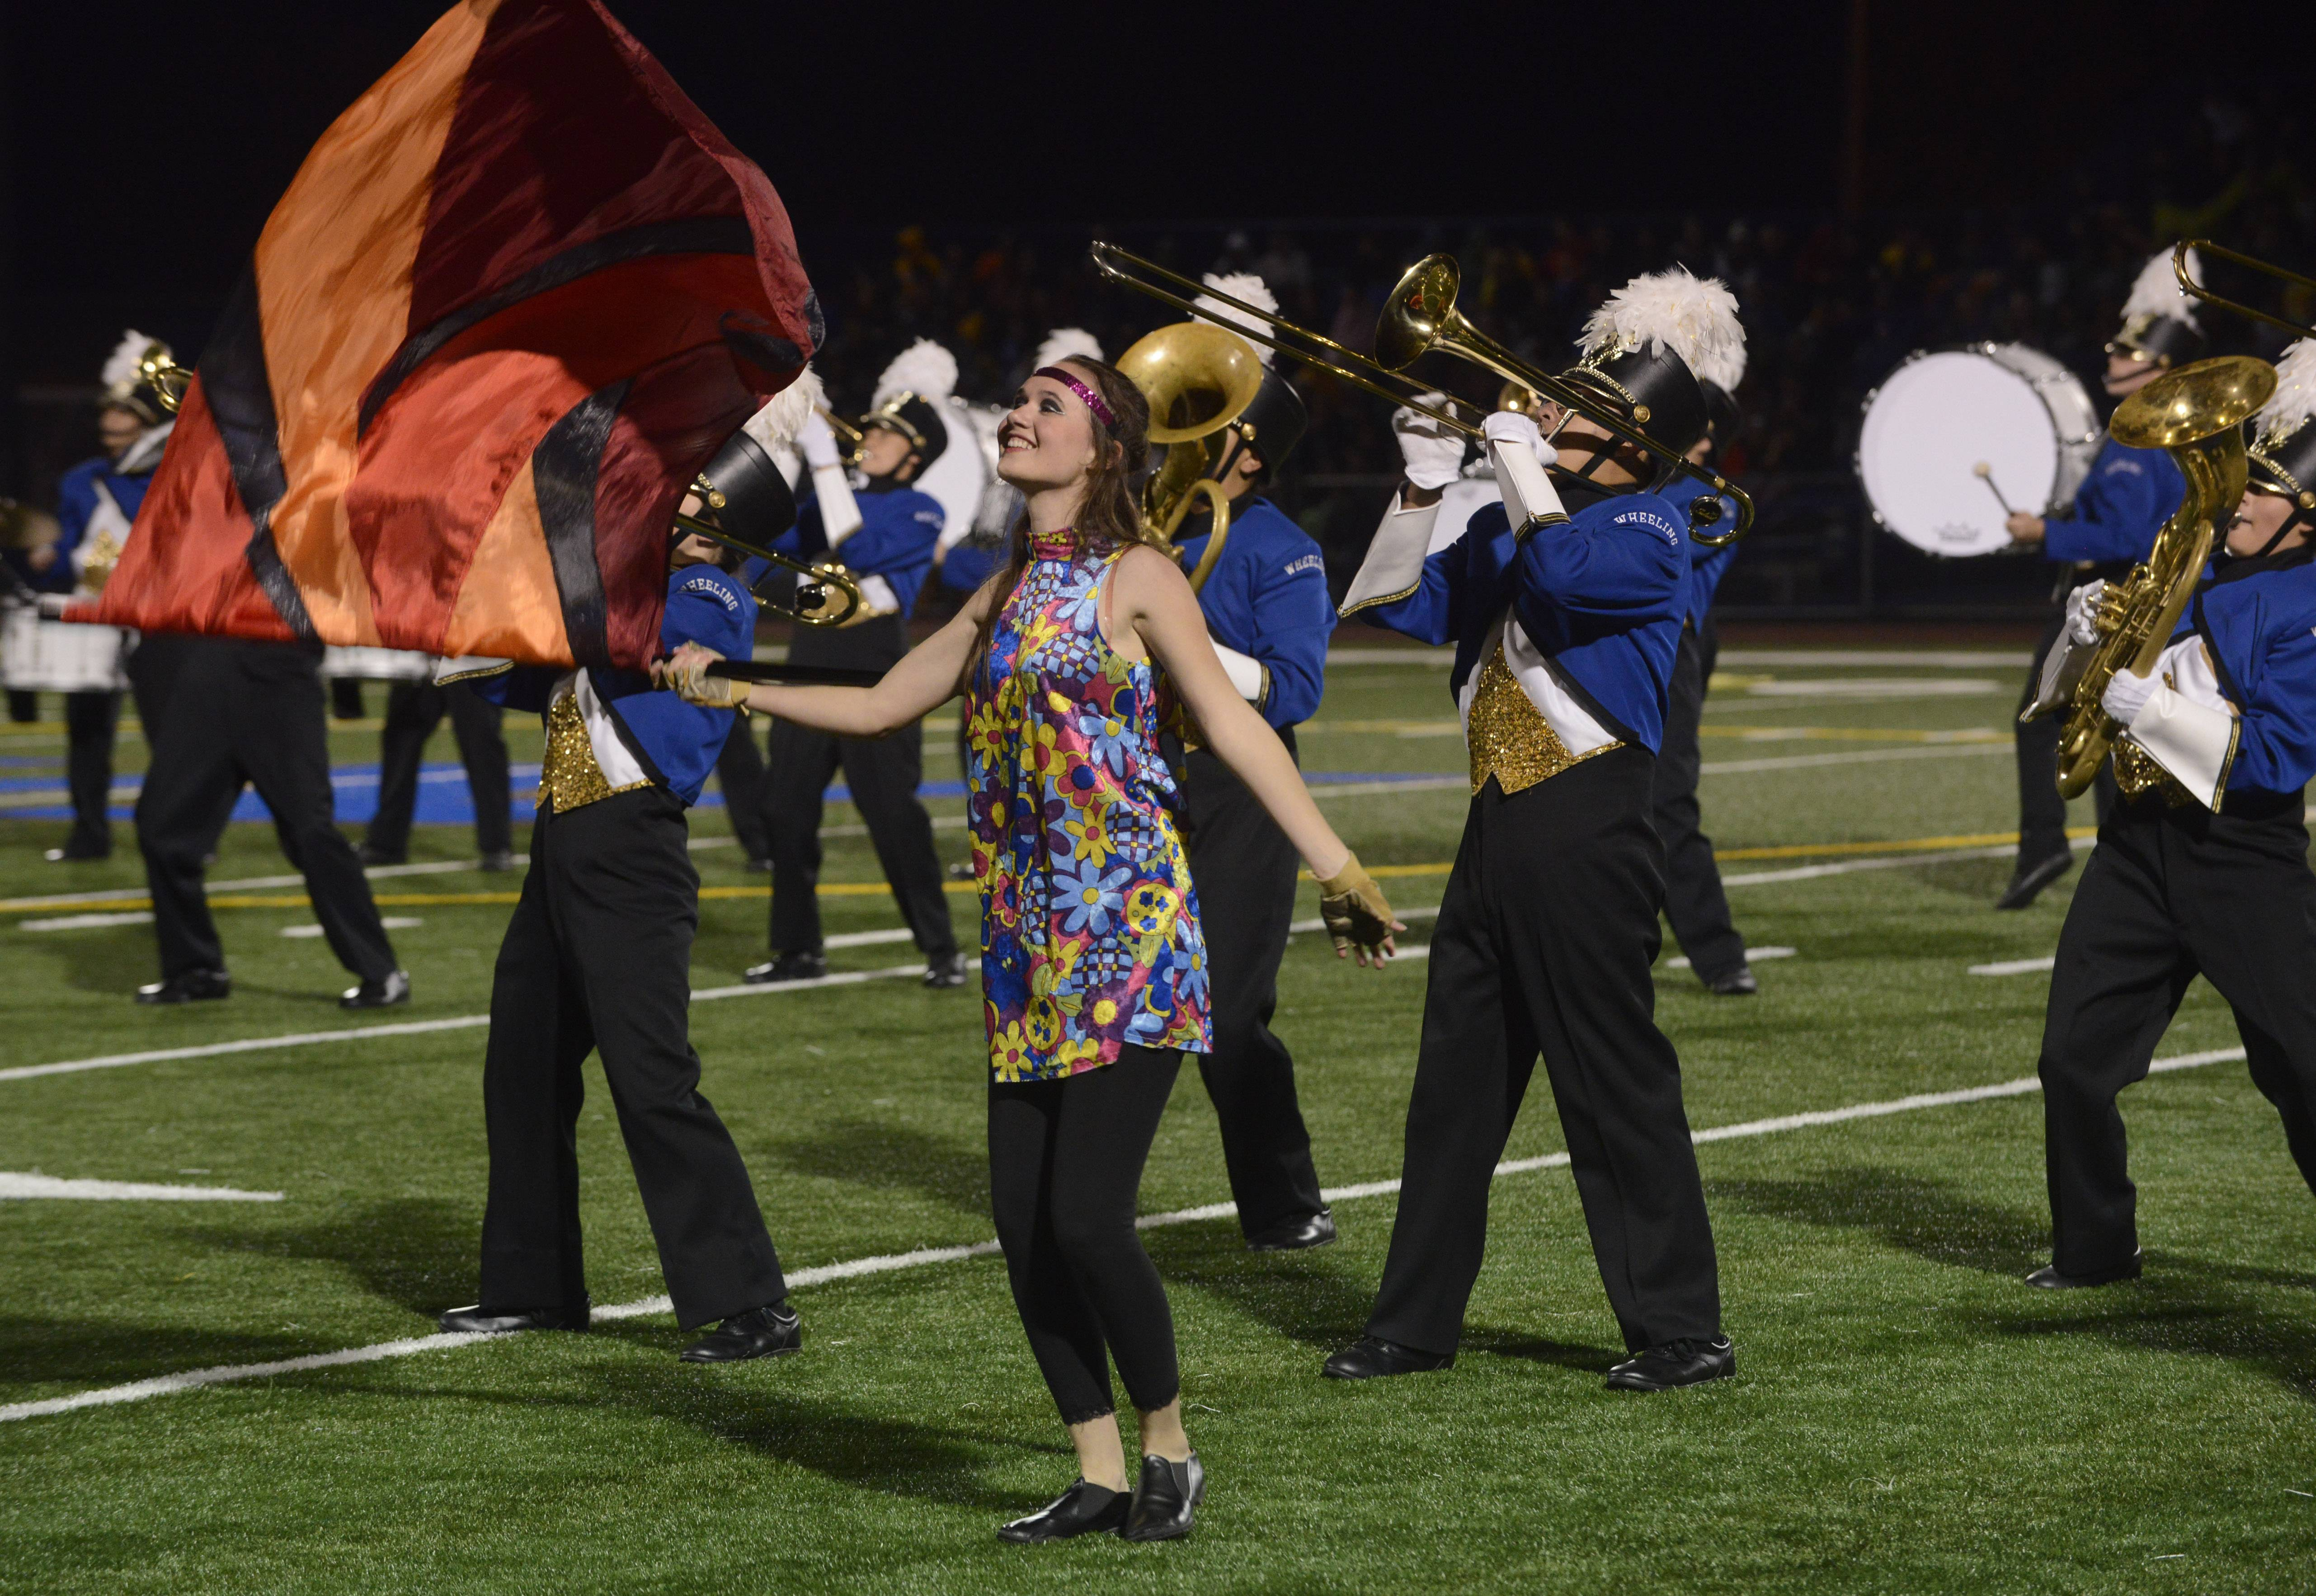 The Wheeling High School Marching Band gives an exhibition performance Saturday during the annual Chicagoland Marching Band Festival at Wheeling High School.